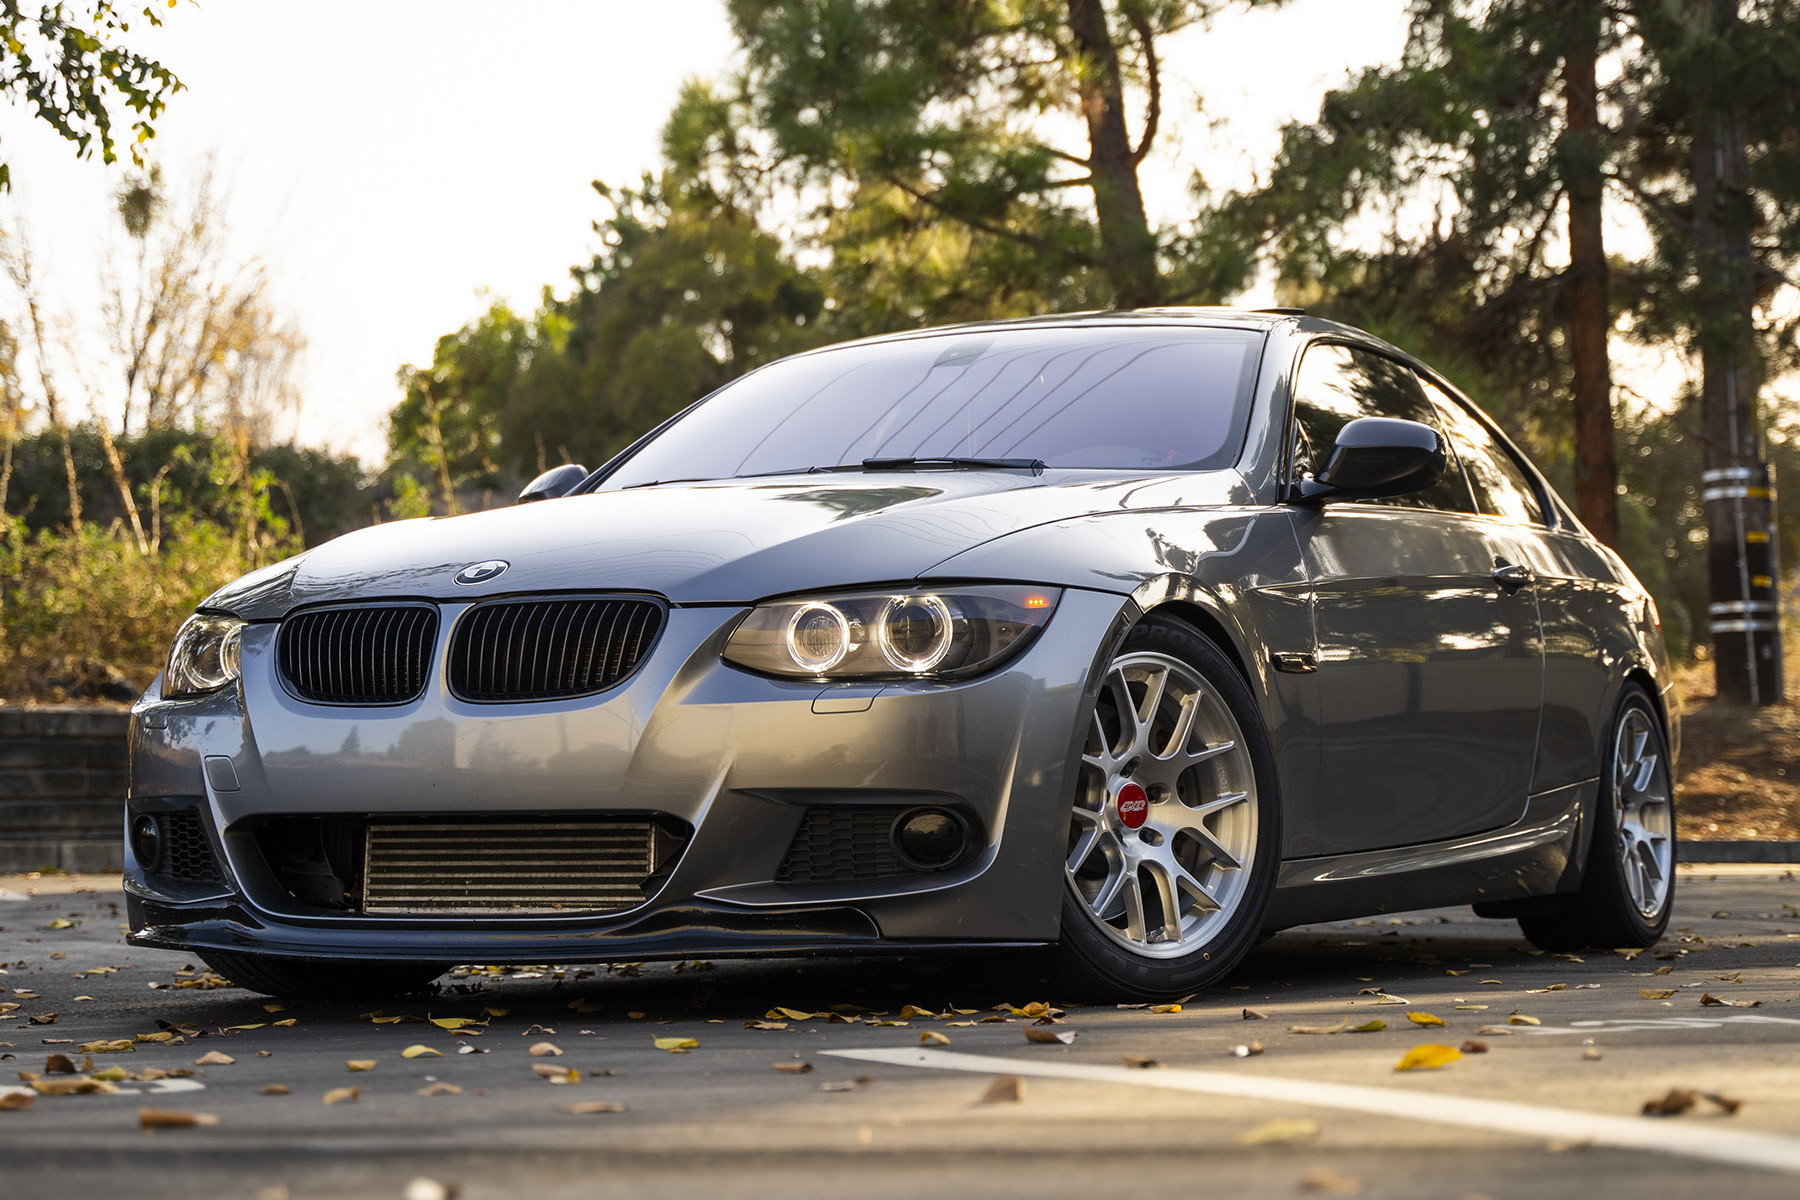 Bmw E92 328i Featuring Ec 7r Forged Wheels Apex Race Parts Blog